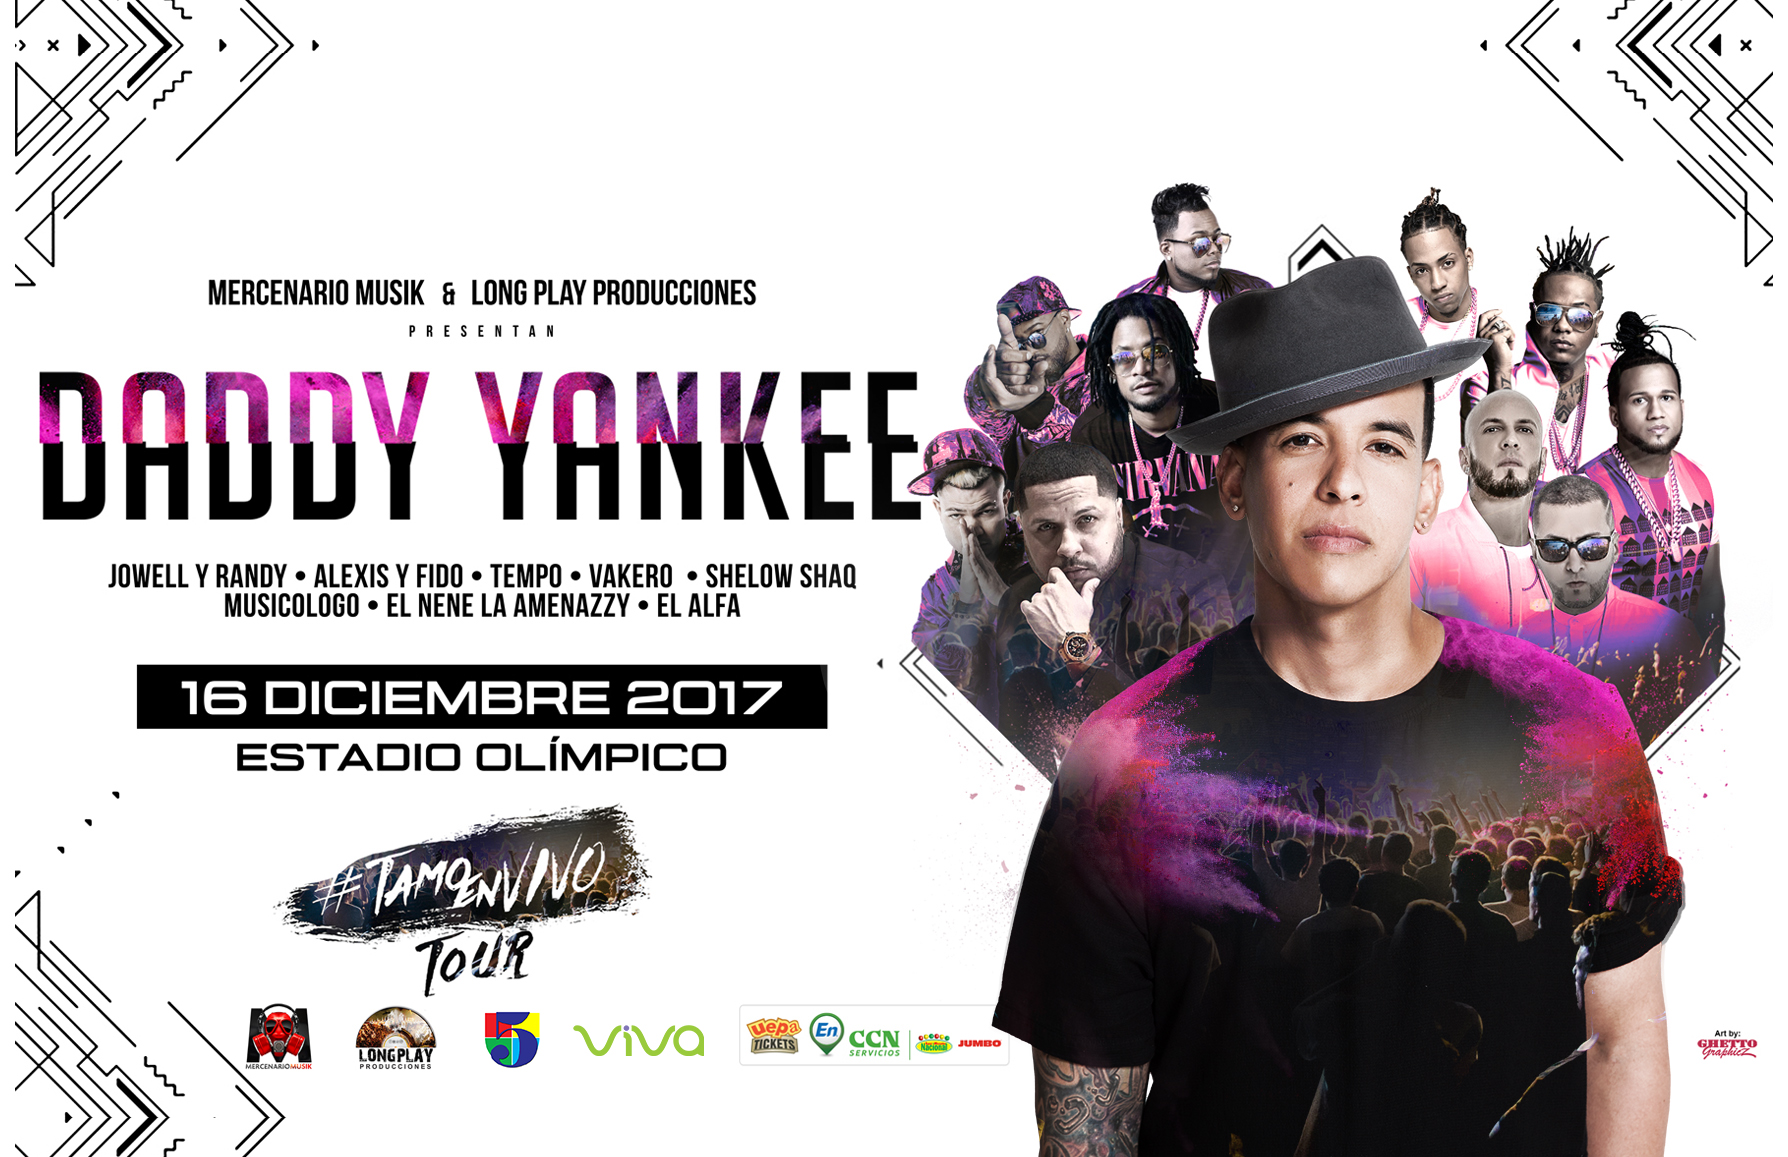 Daddy Yankee – «Tamo En Vivo Tour»